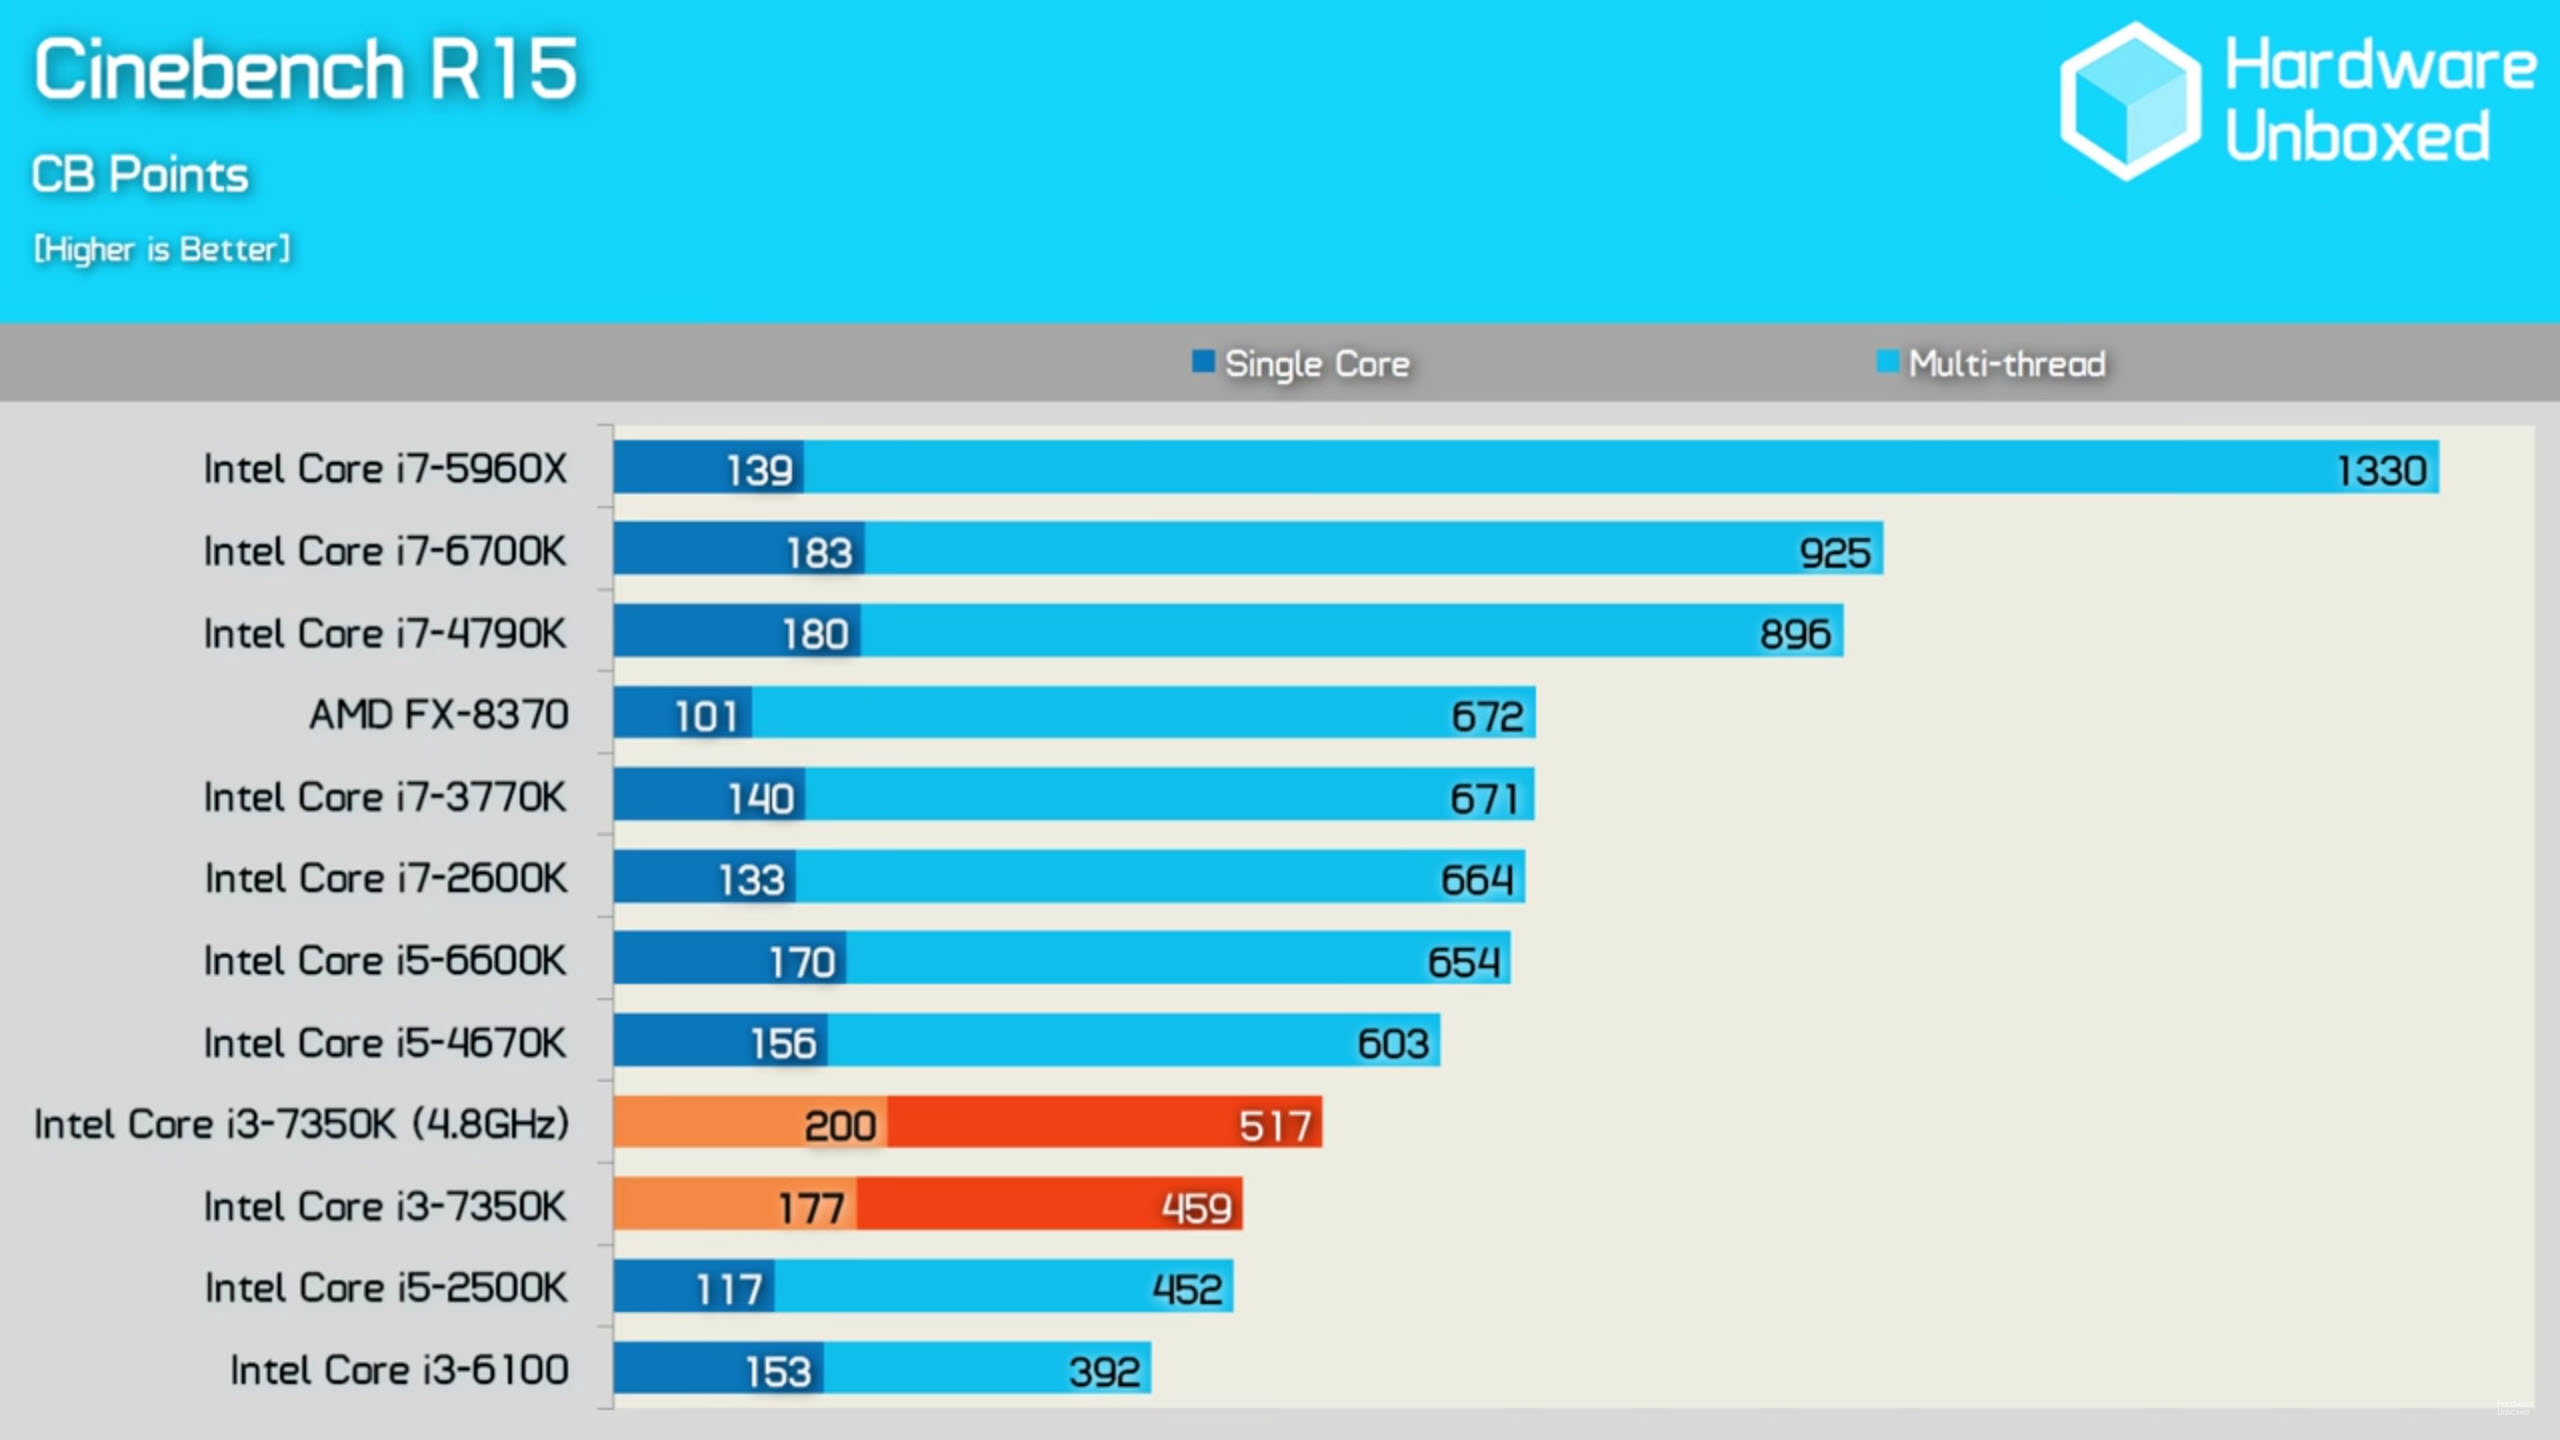 Intel Core i3-7350K Reviewed - The Budget, Overclock Ready ...